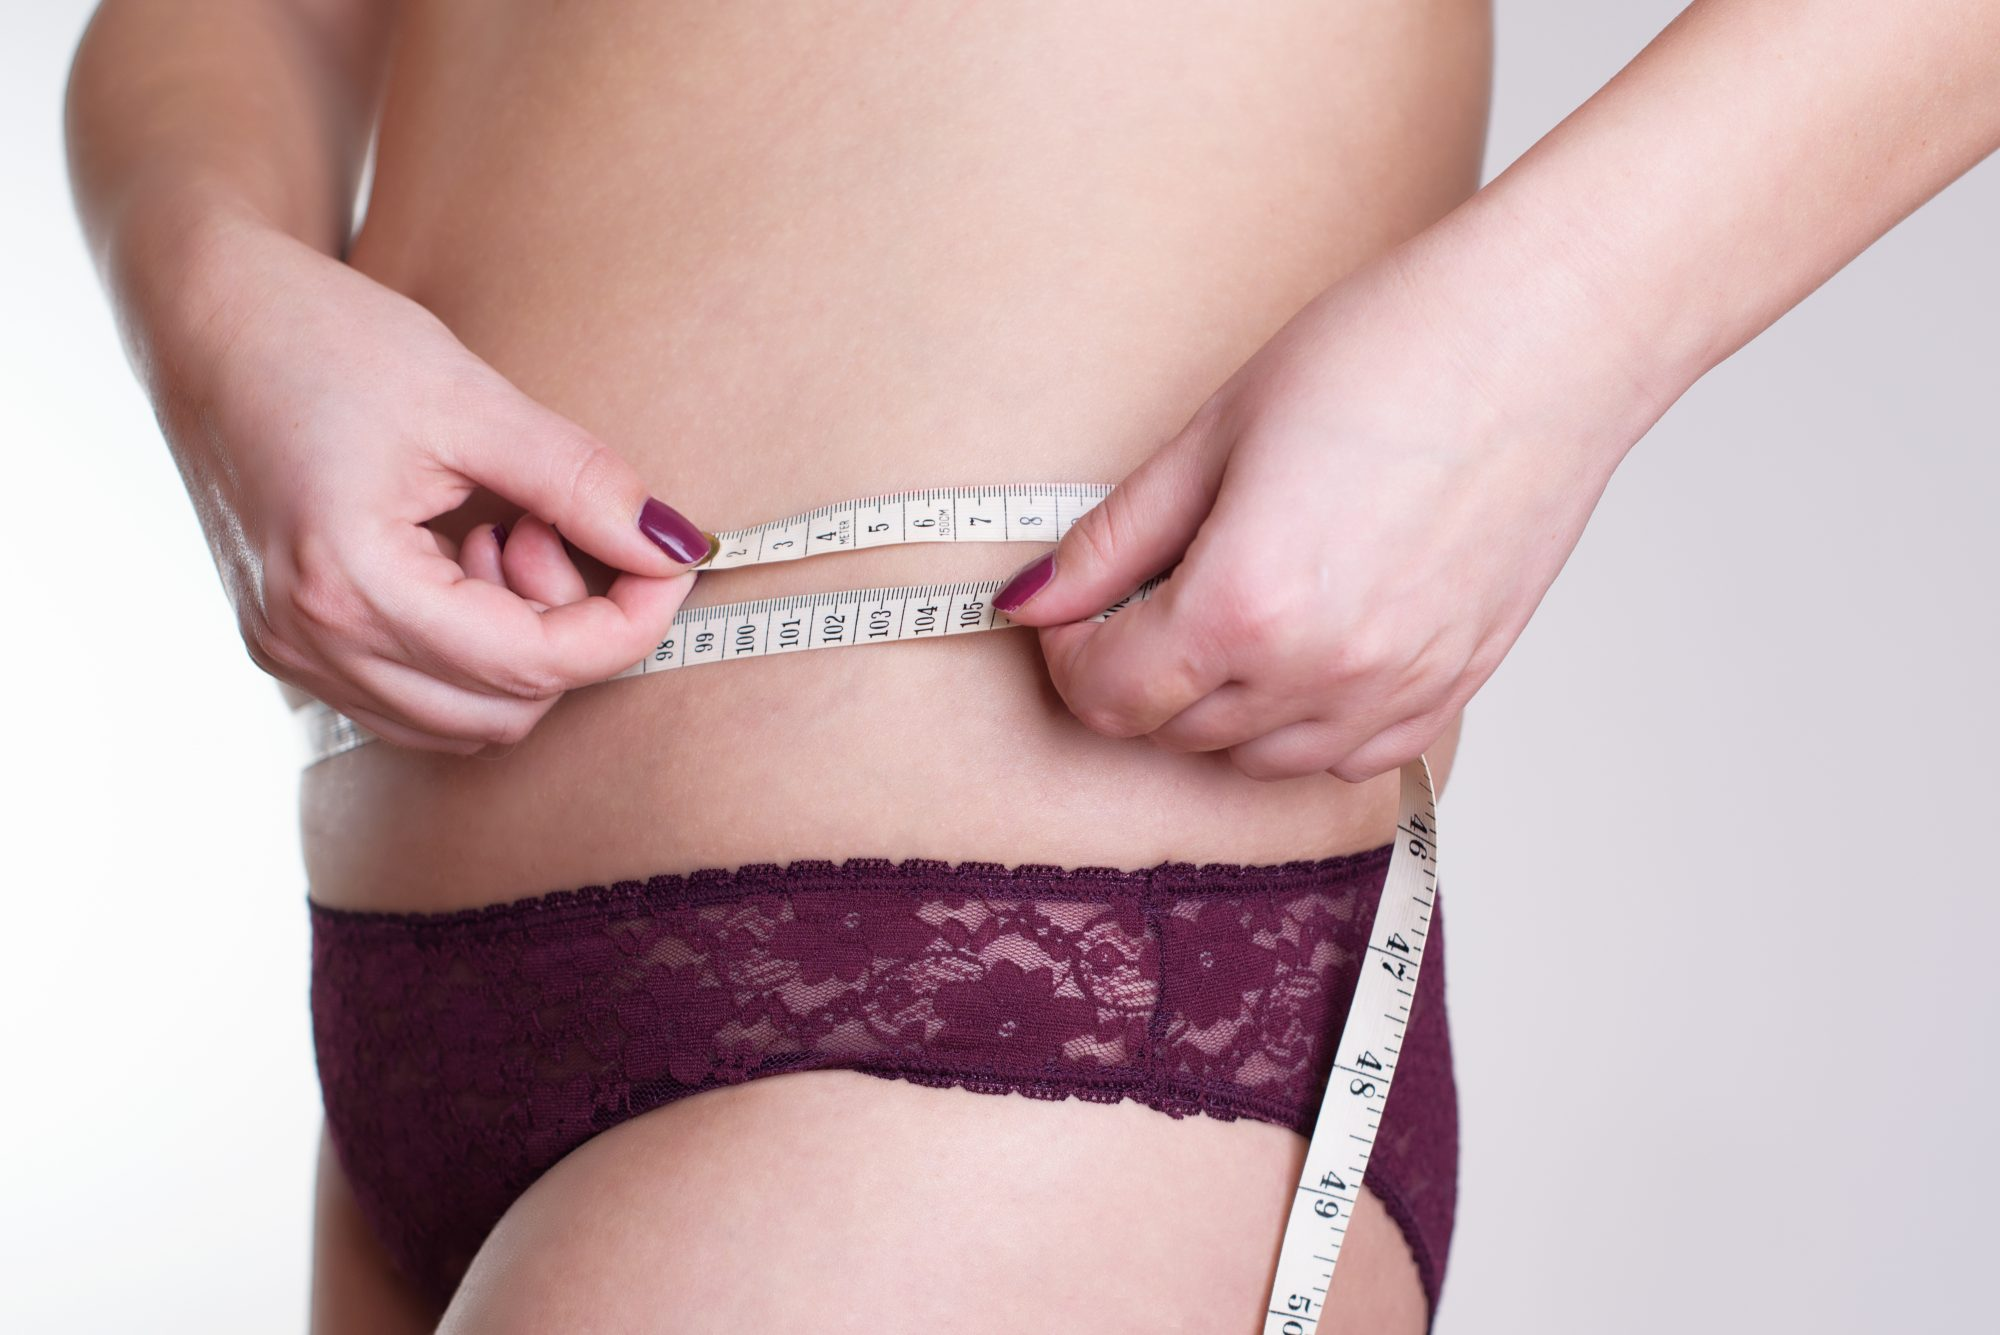 4-unexplained-weight-loss-type-1-diabetes-tape-measure